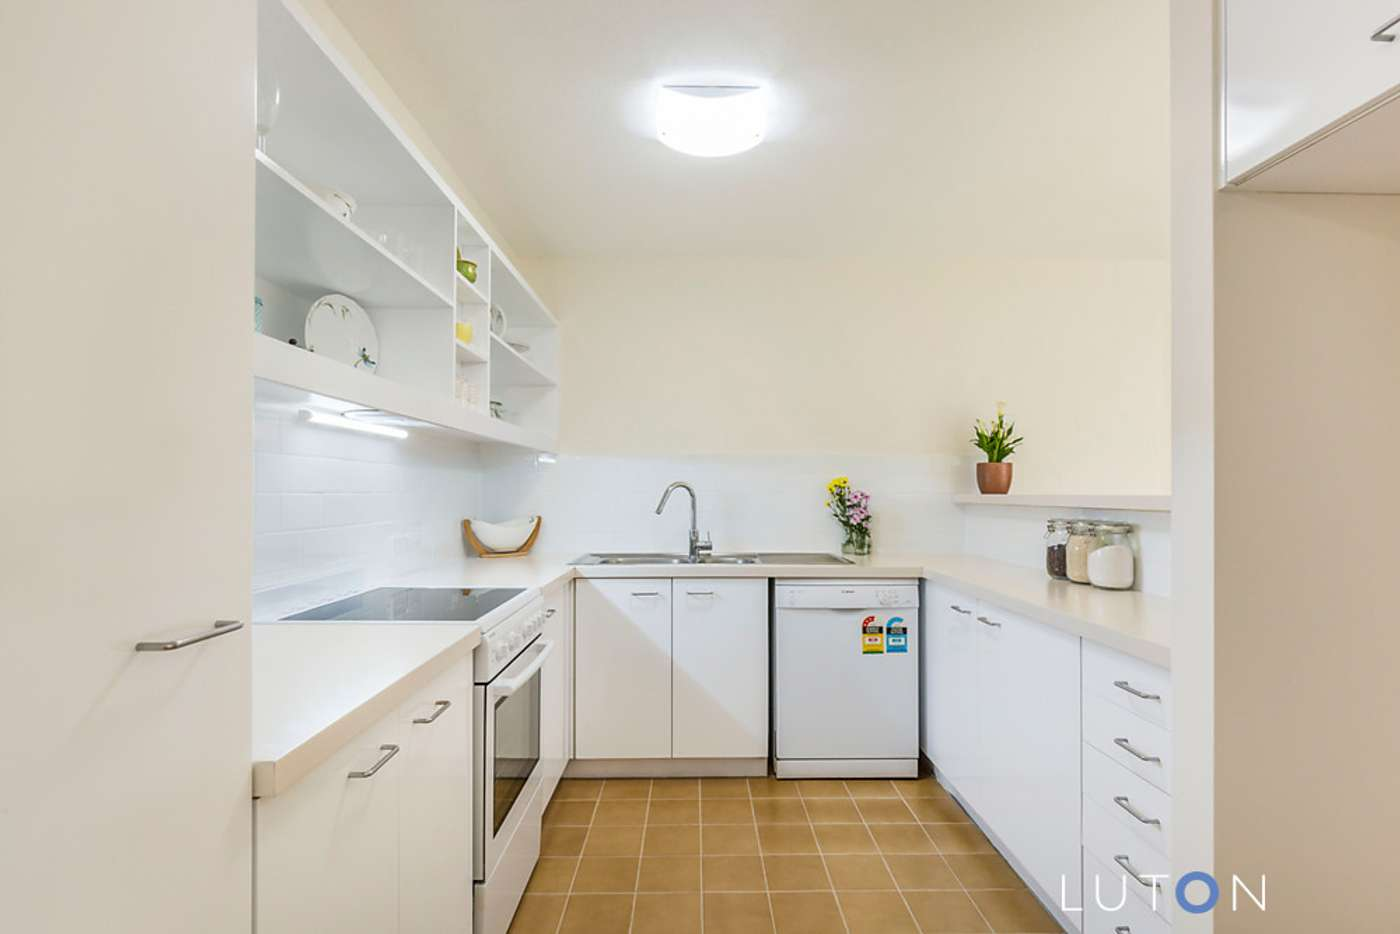 Fifth view of Homely apartment listing, 37/26 Macquarie Street, Barton ACT 2600